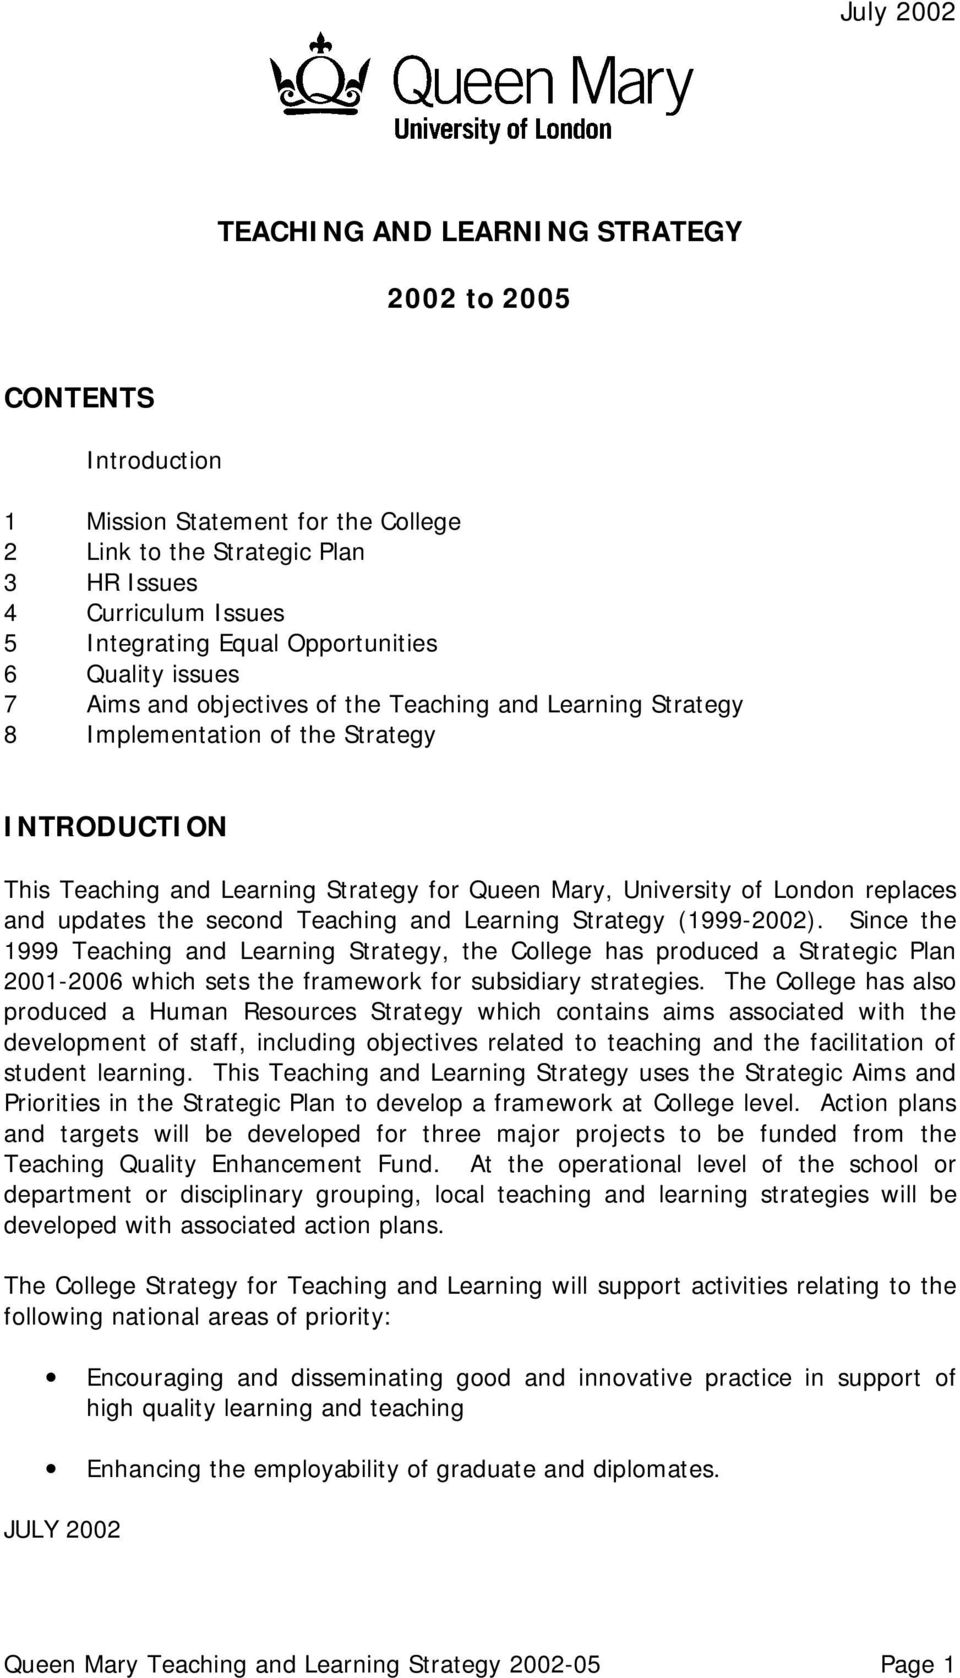 of London replaces and updates the second Teaching and Learning Strategy (1999-2002).